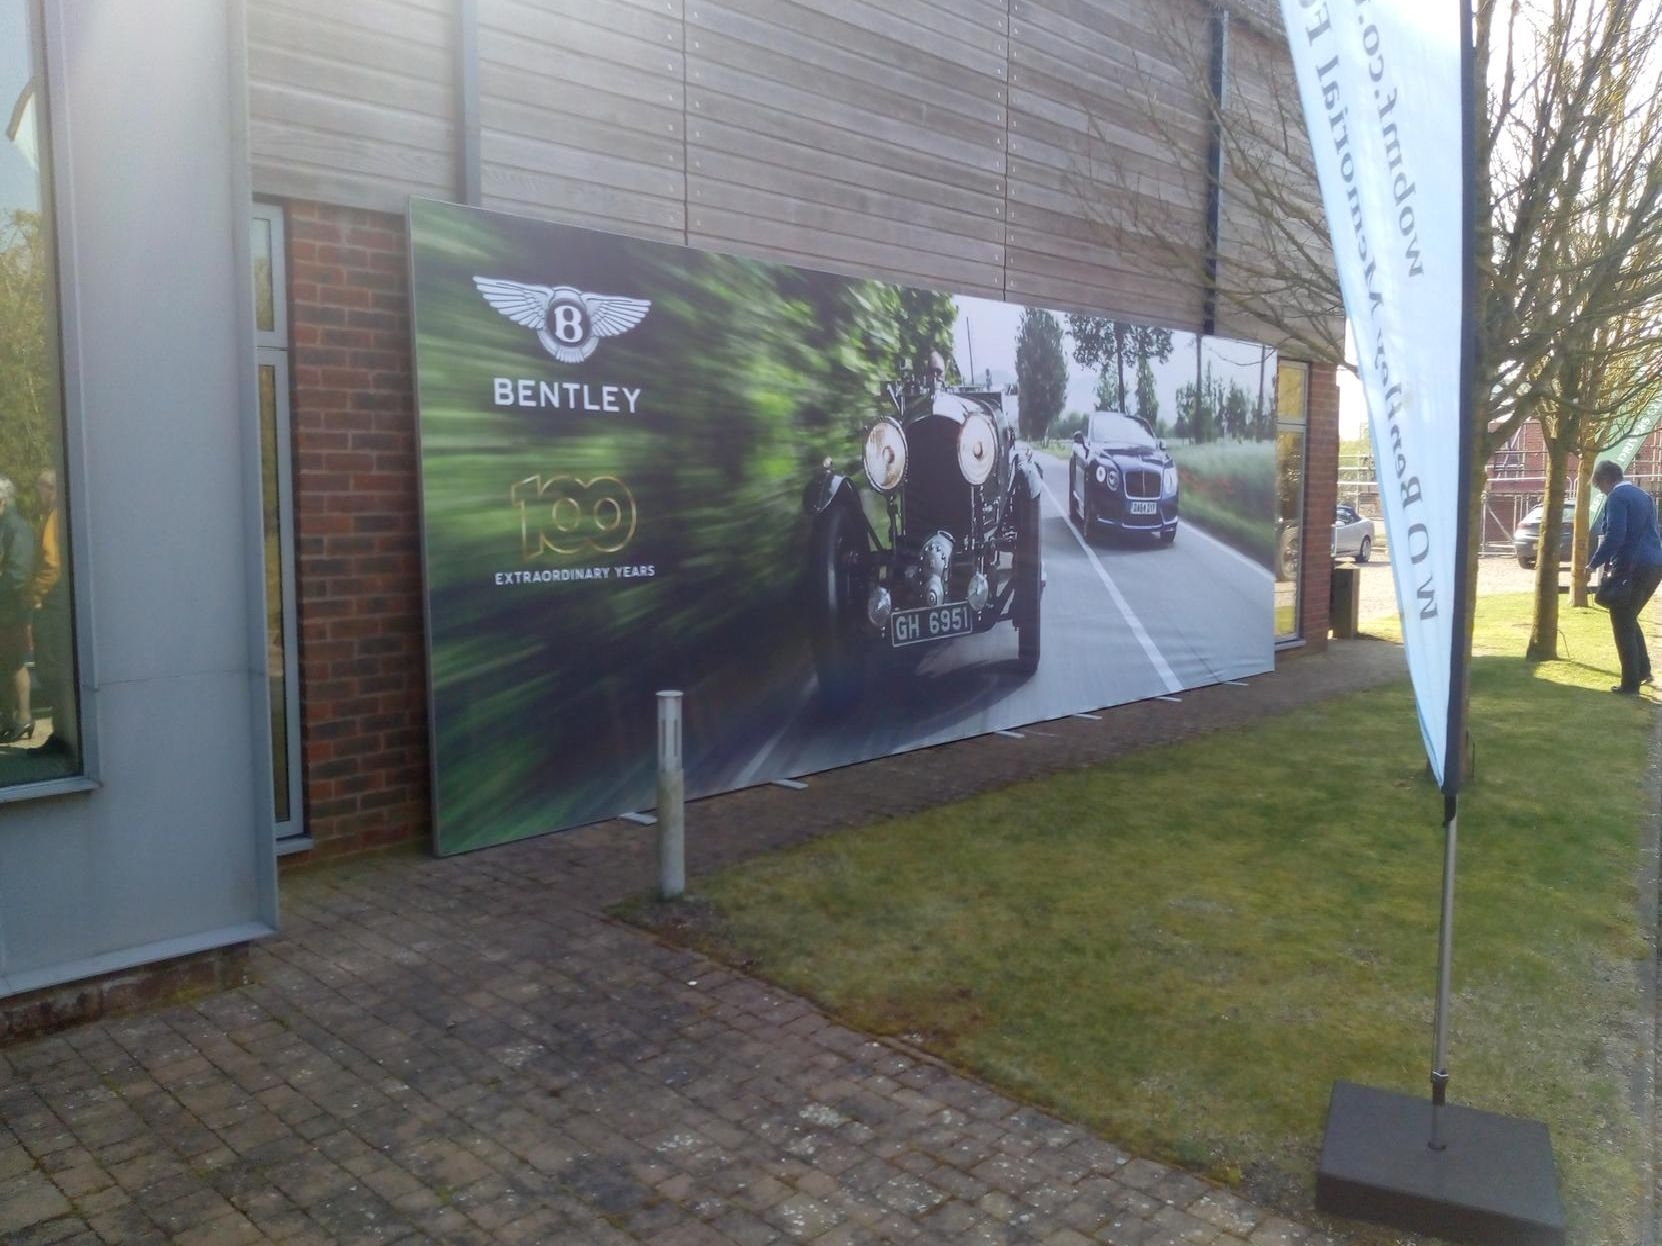 The Bentley Owners Club HQ in Wroxton's Apollo Park